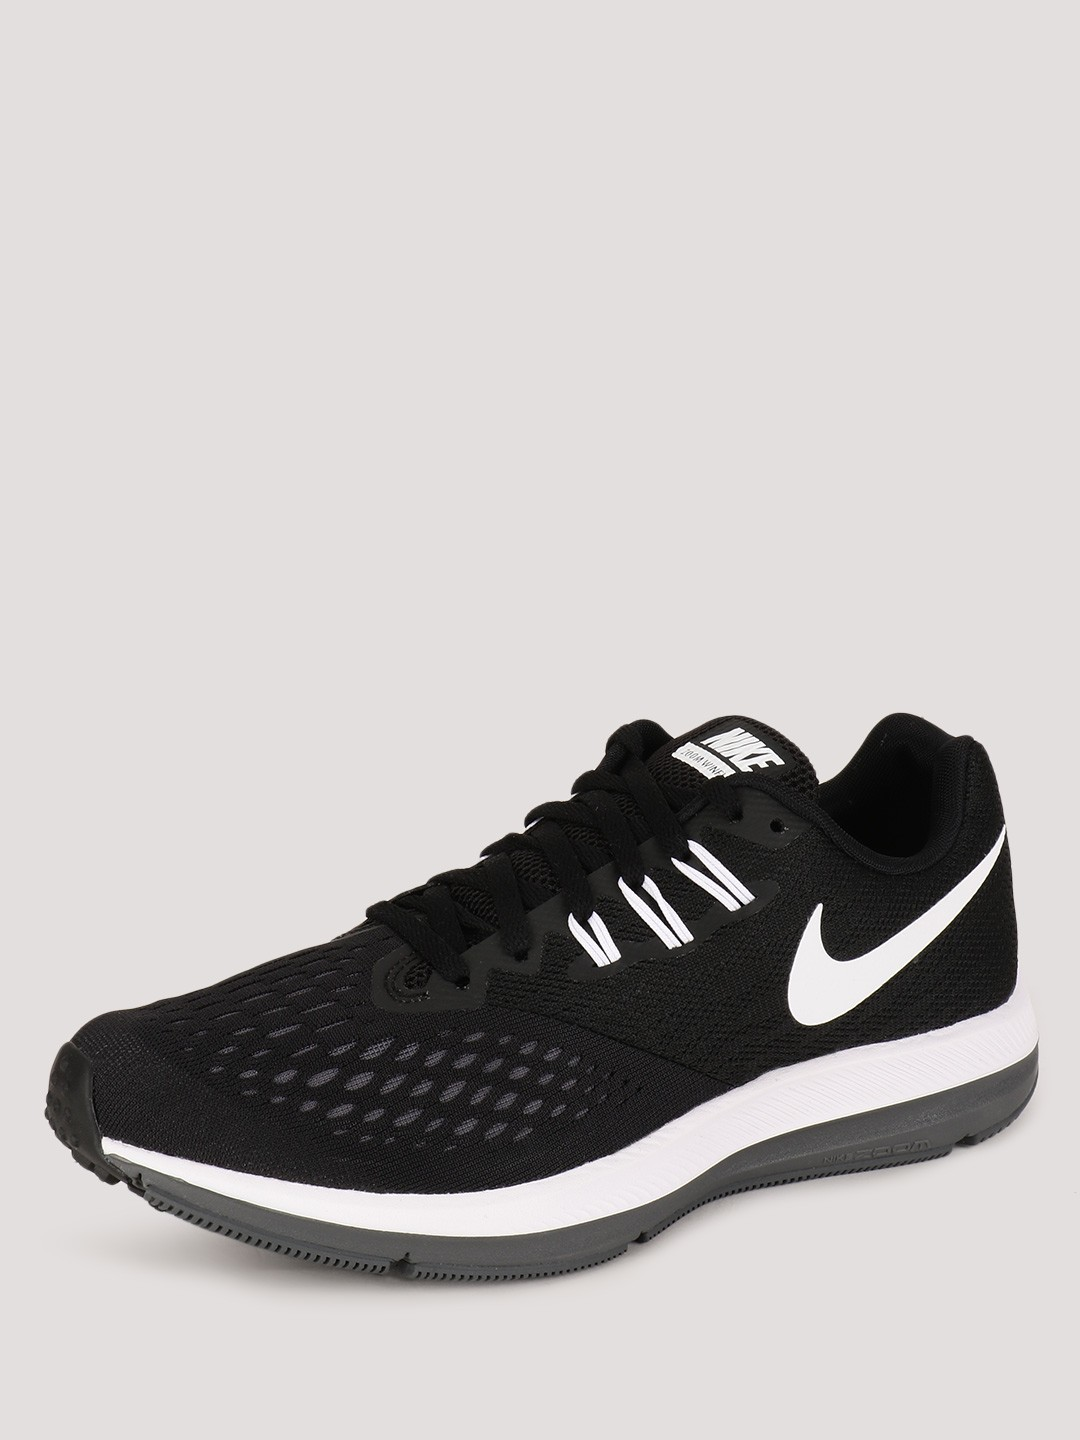 best service acc9c a20b4 Buy Nike Black Zoom Winflo 4 Running Shoes for Girls Online ...